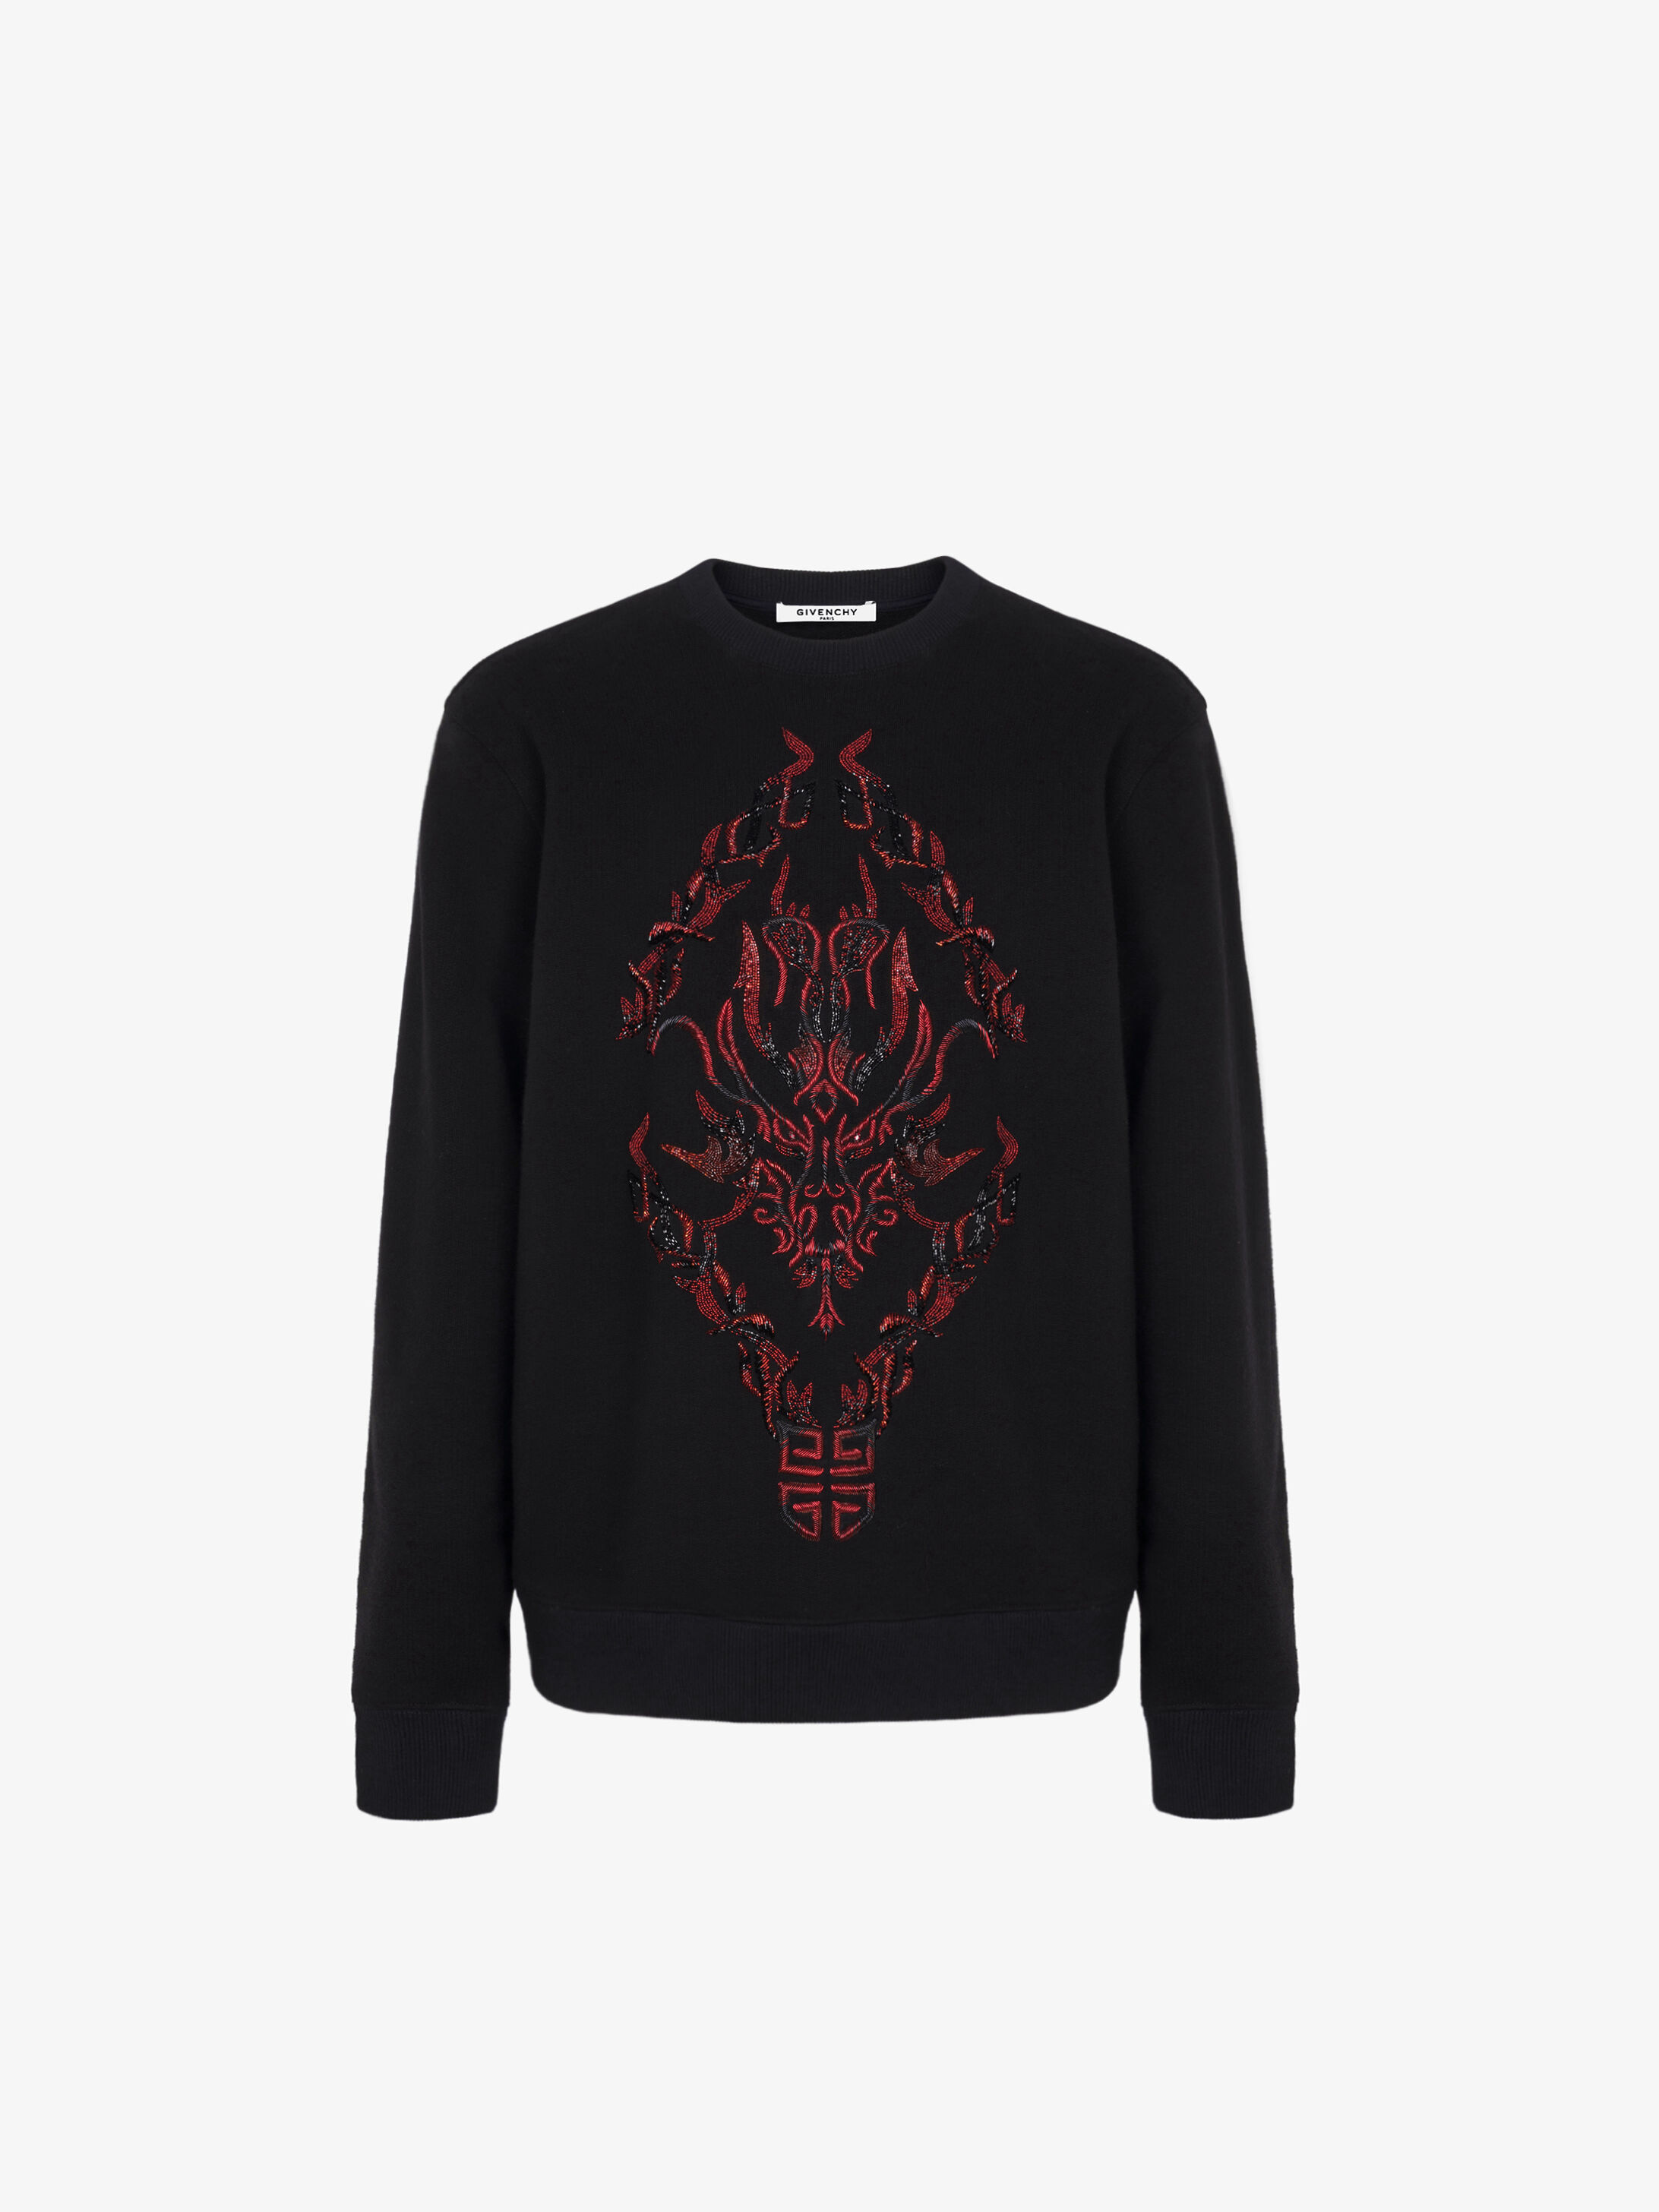 Men s Sweatshirts collection by Givenchy.  c9693b9bbe31